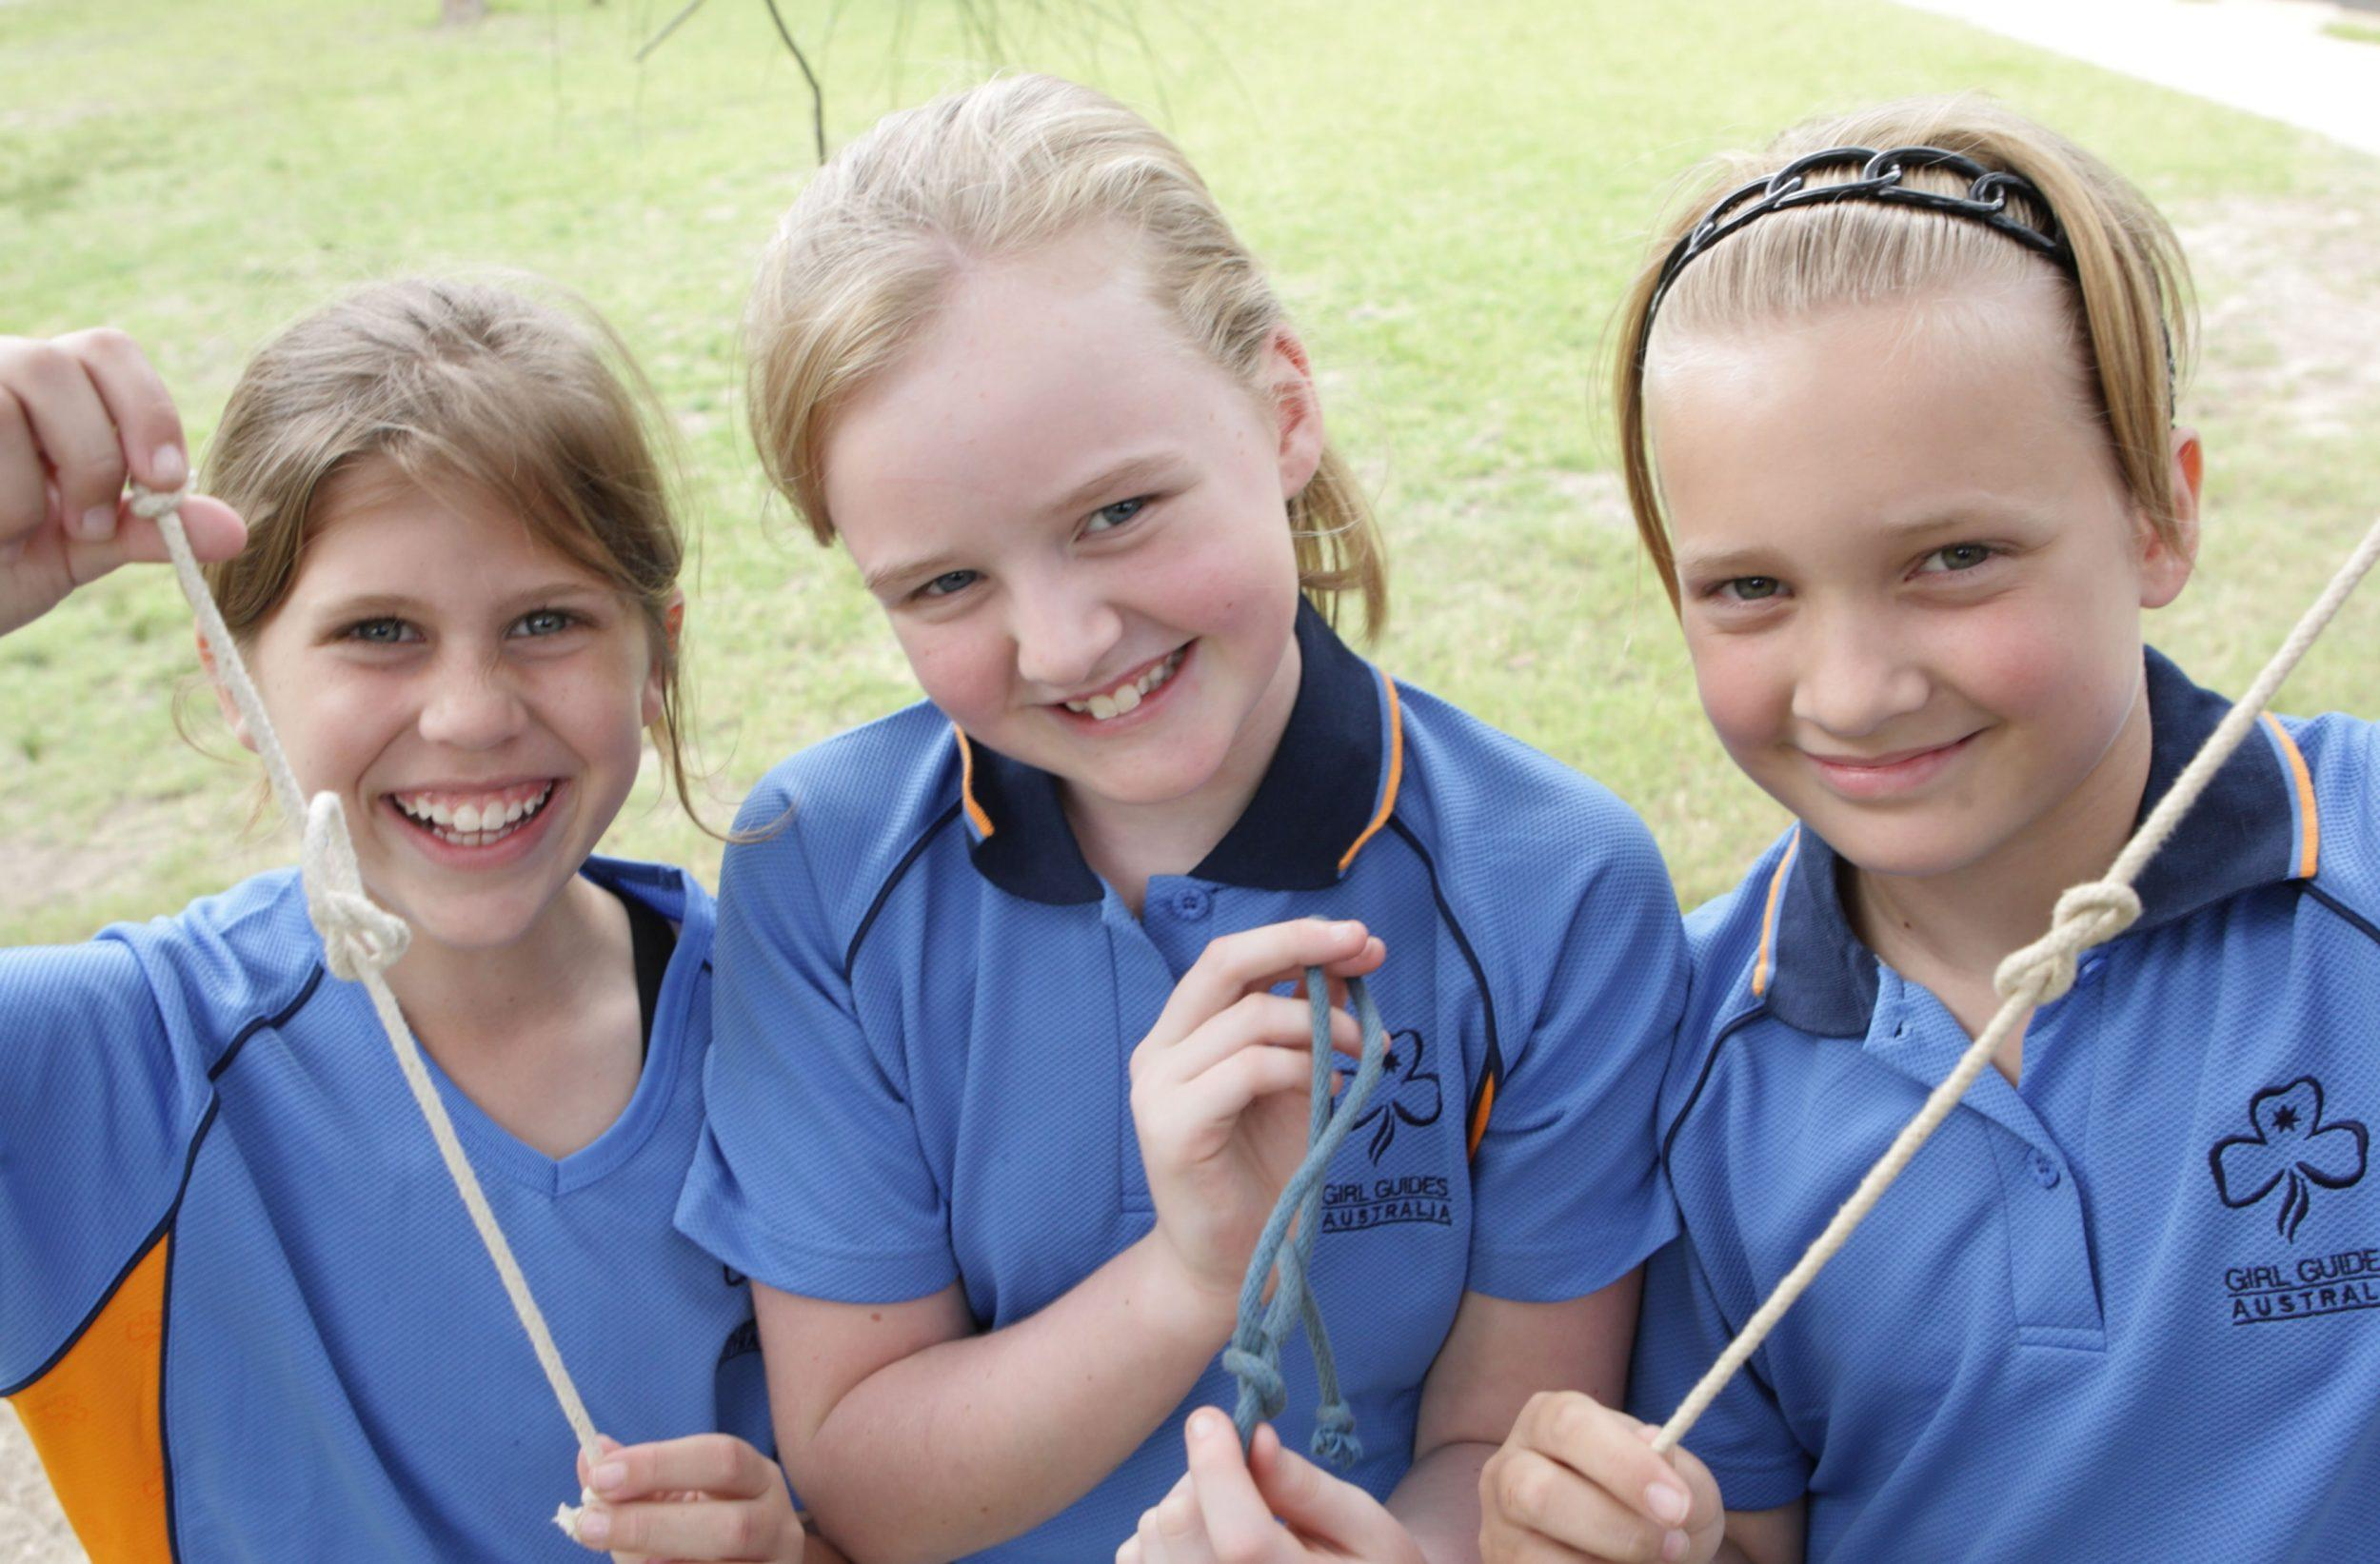 Guide Lines – For Girl Guides and Girl Guide Volunteers